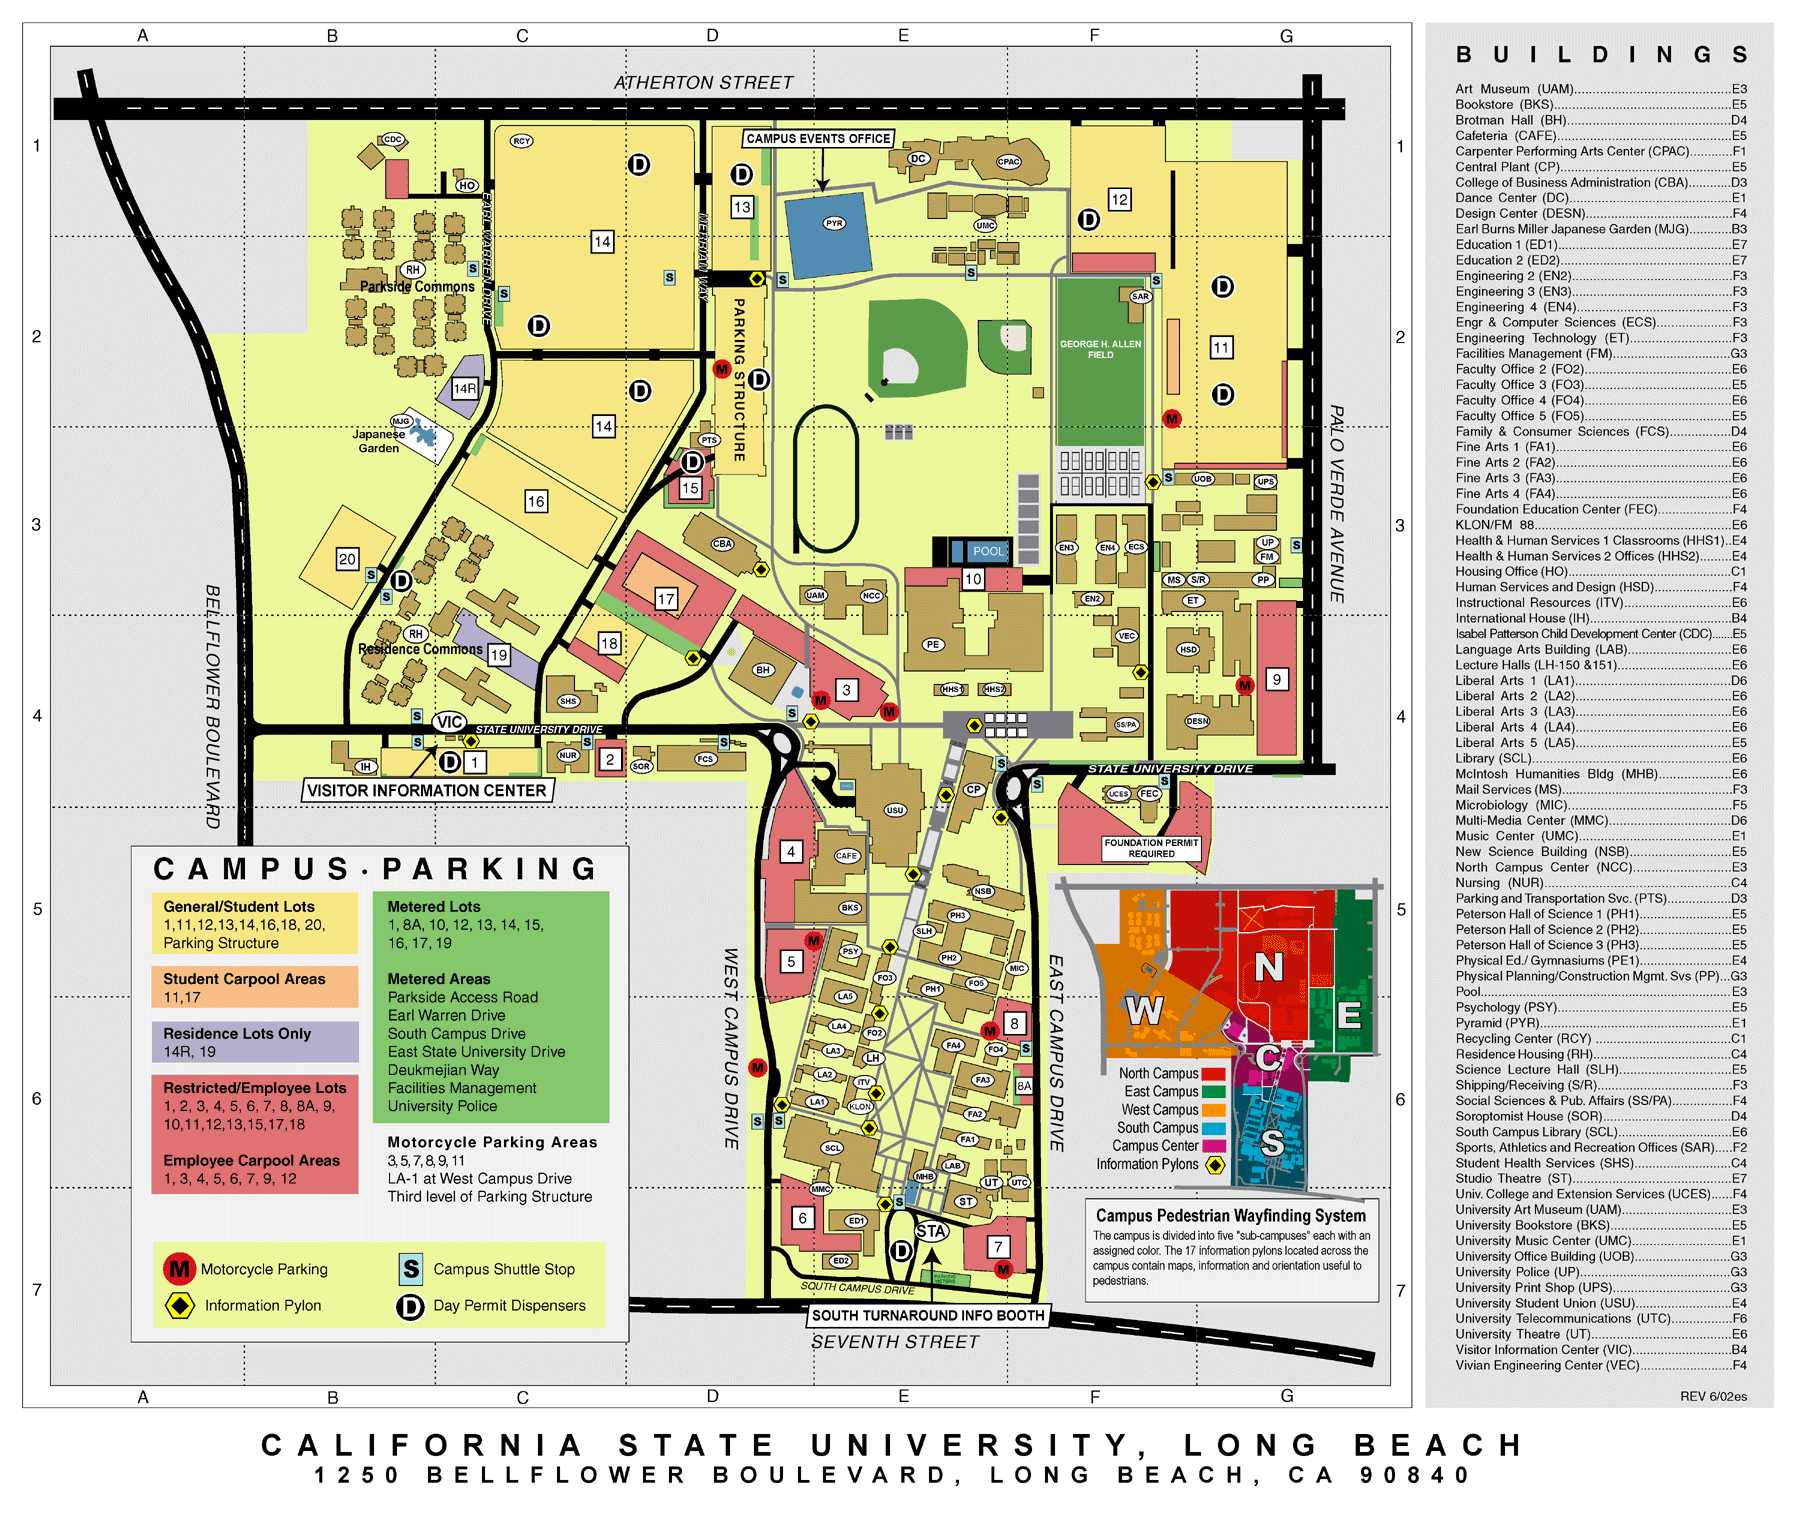 csula location images reverse search